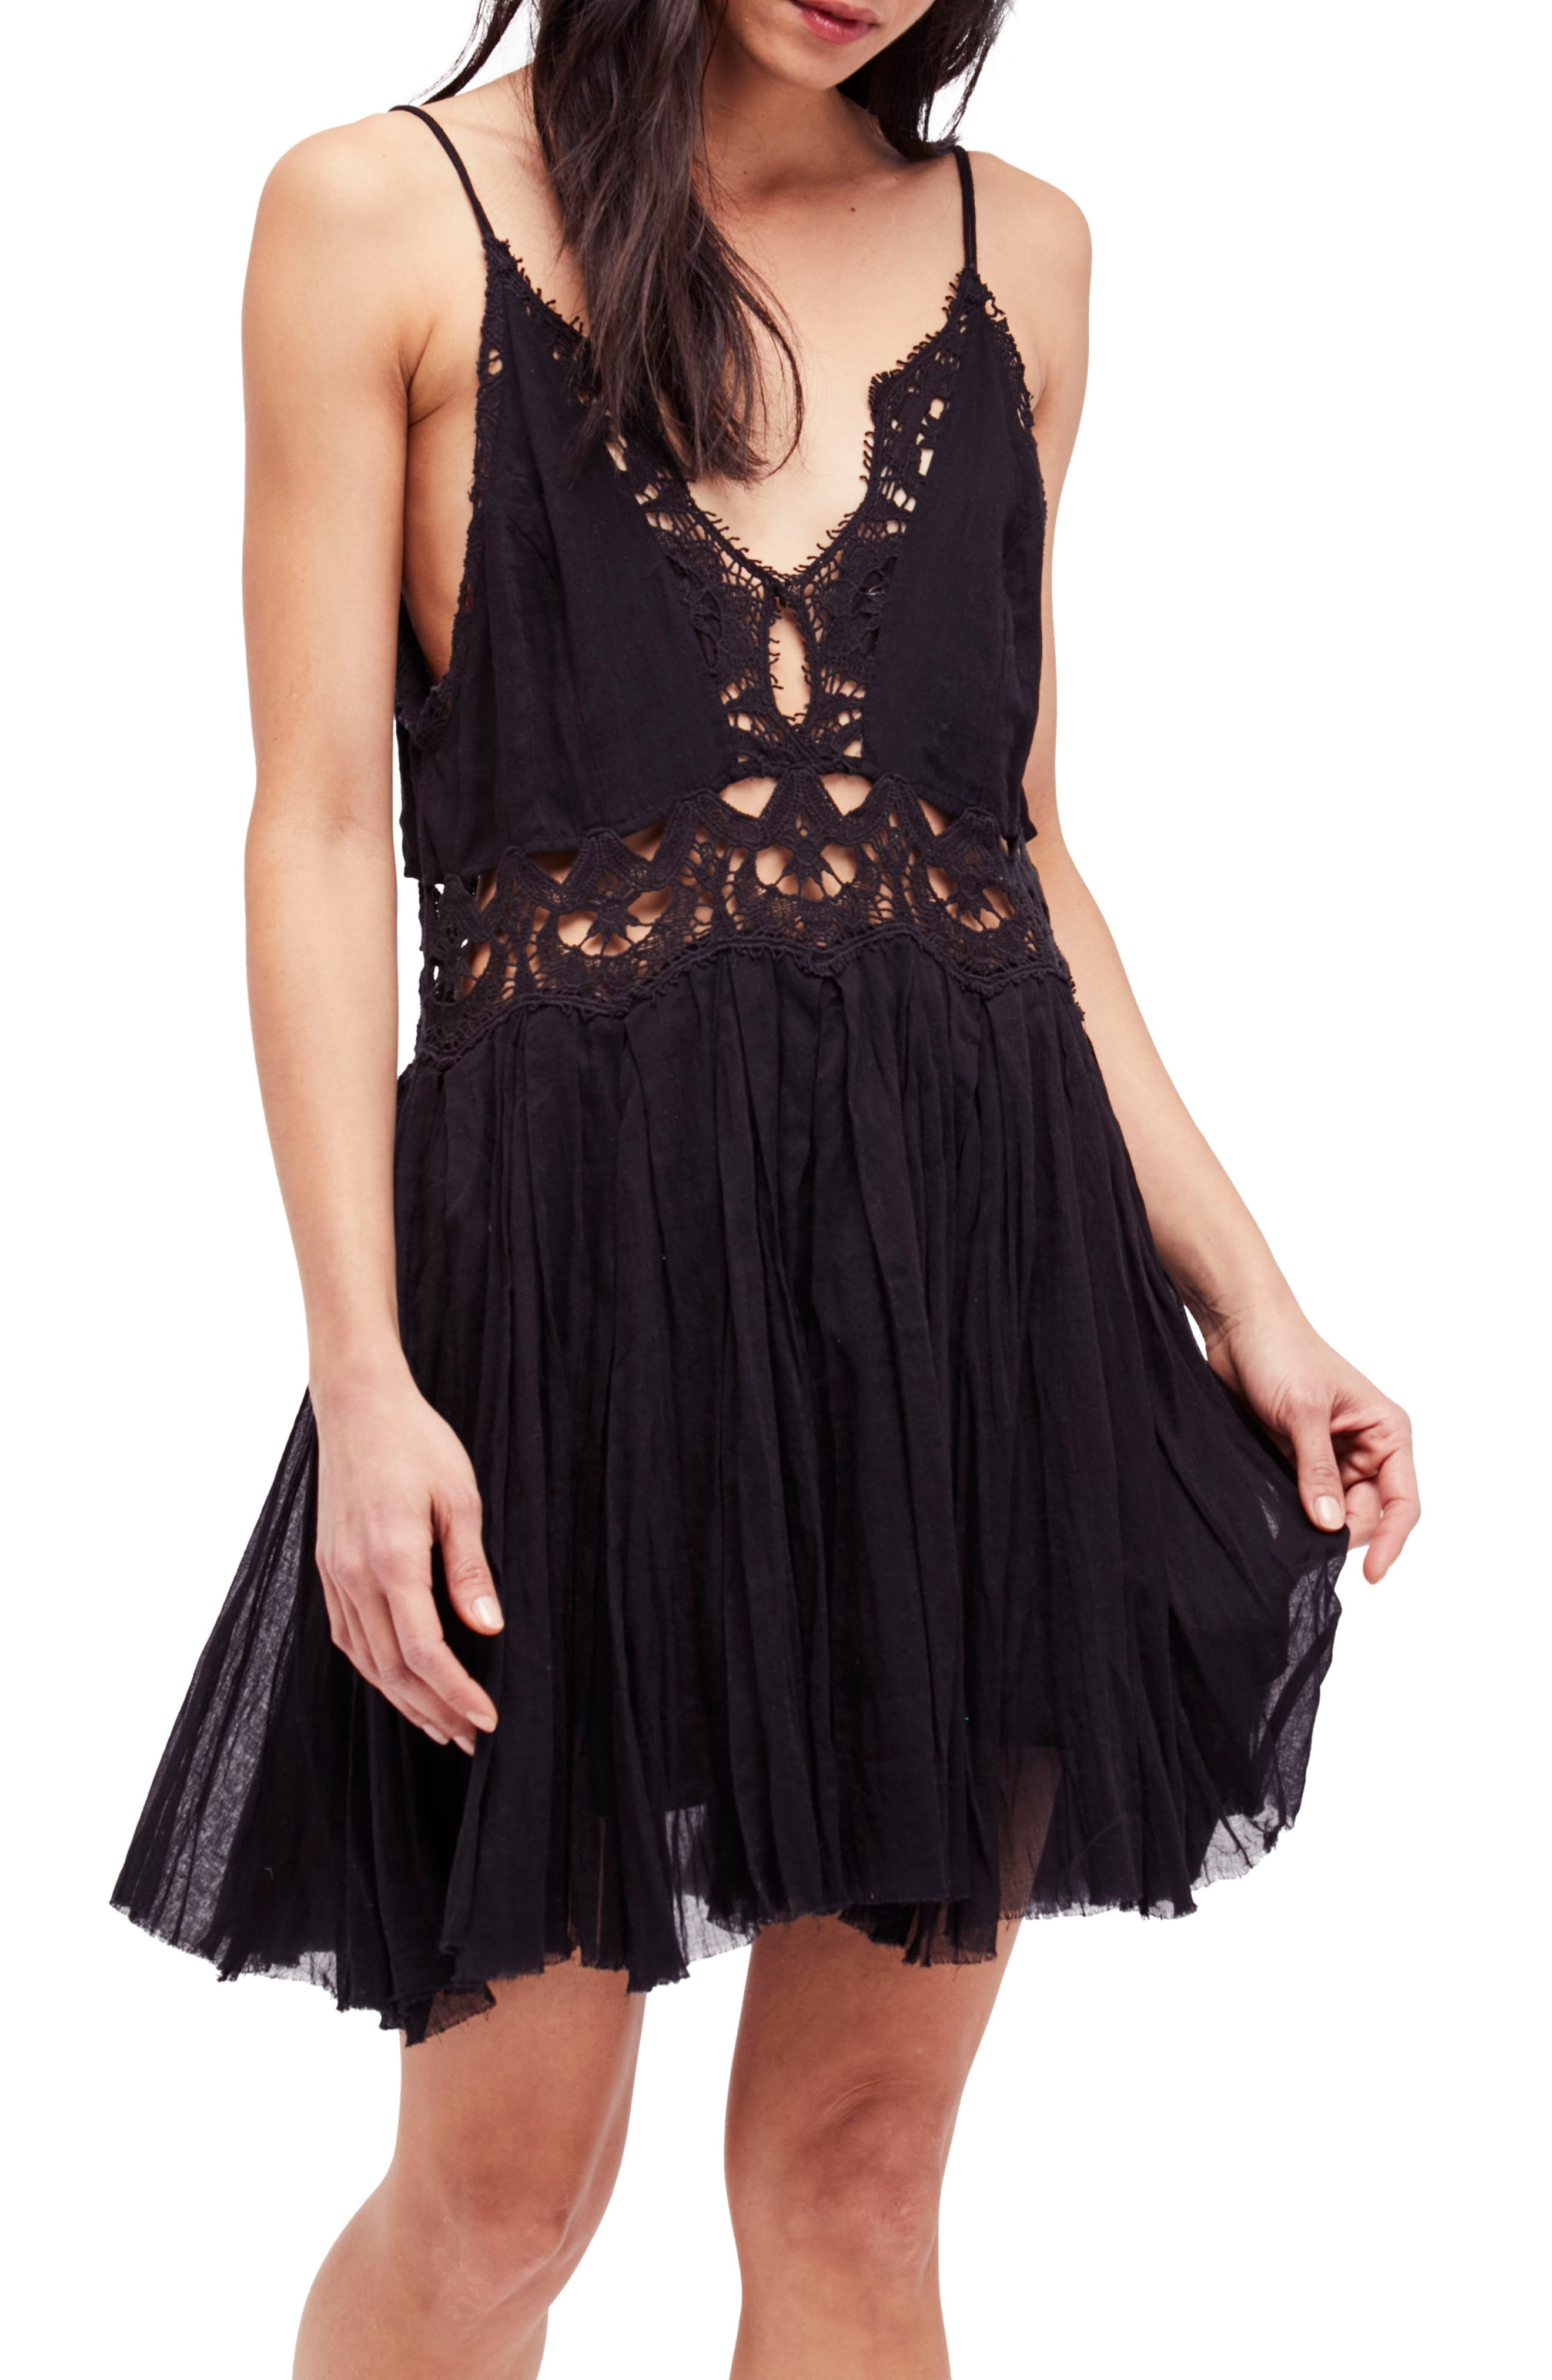 Free People Ilektra Lace Minidress